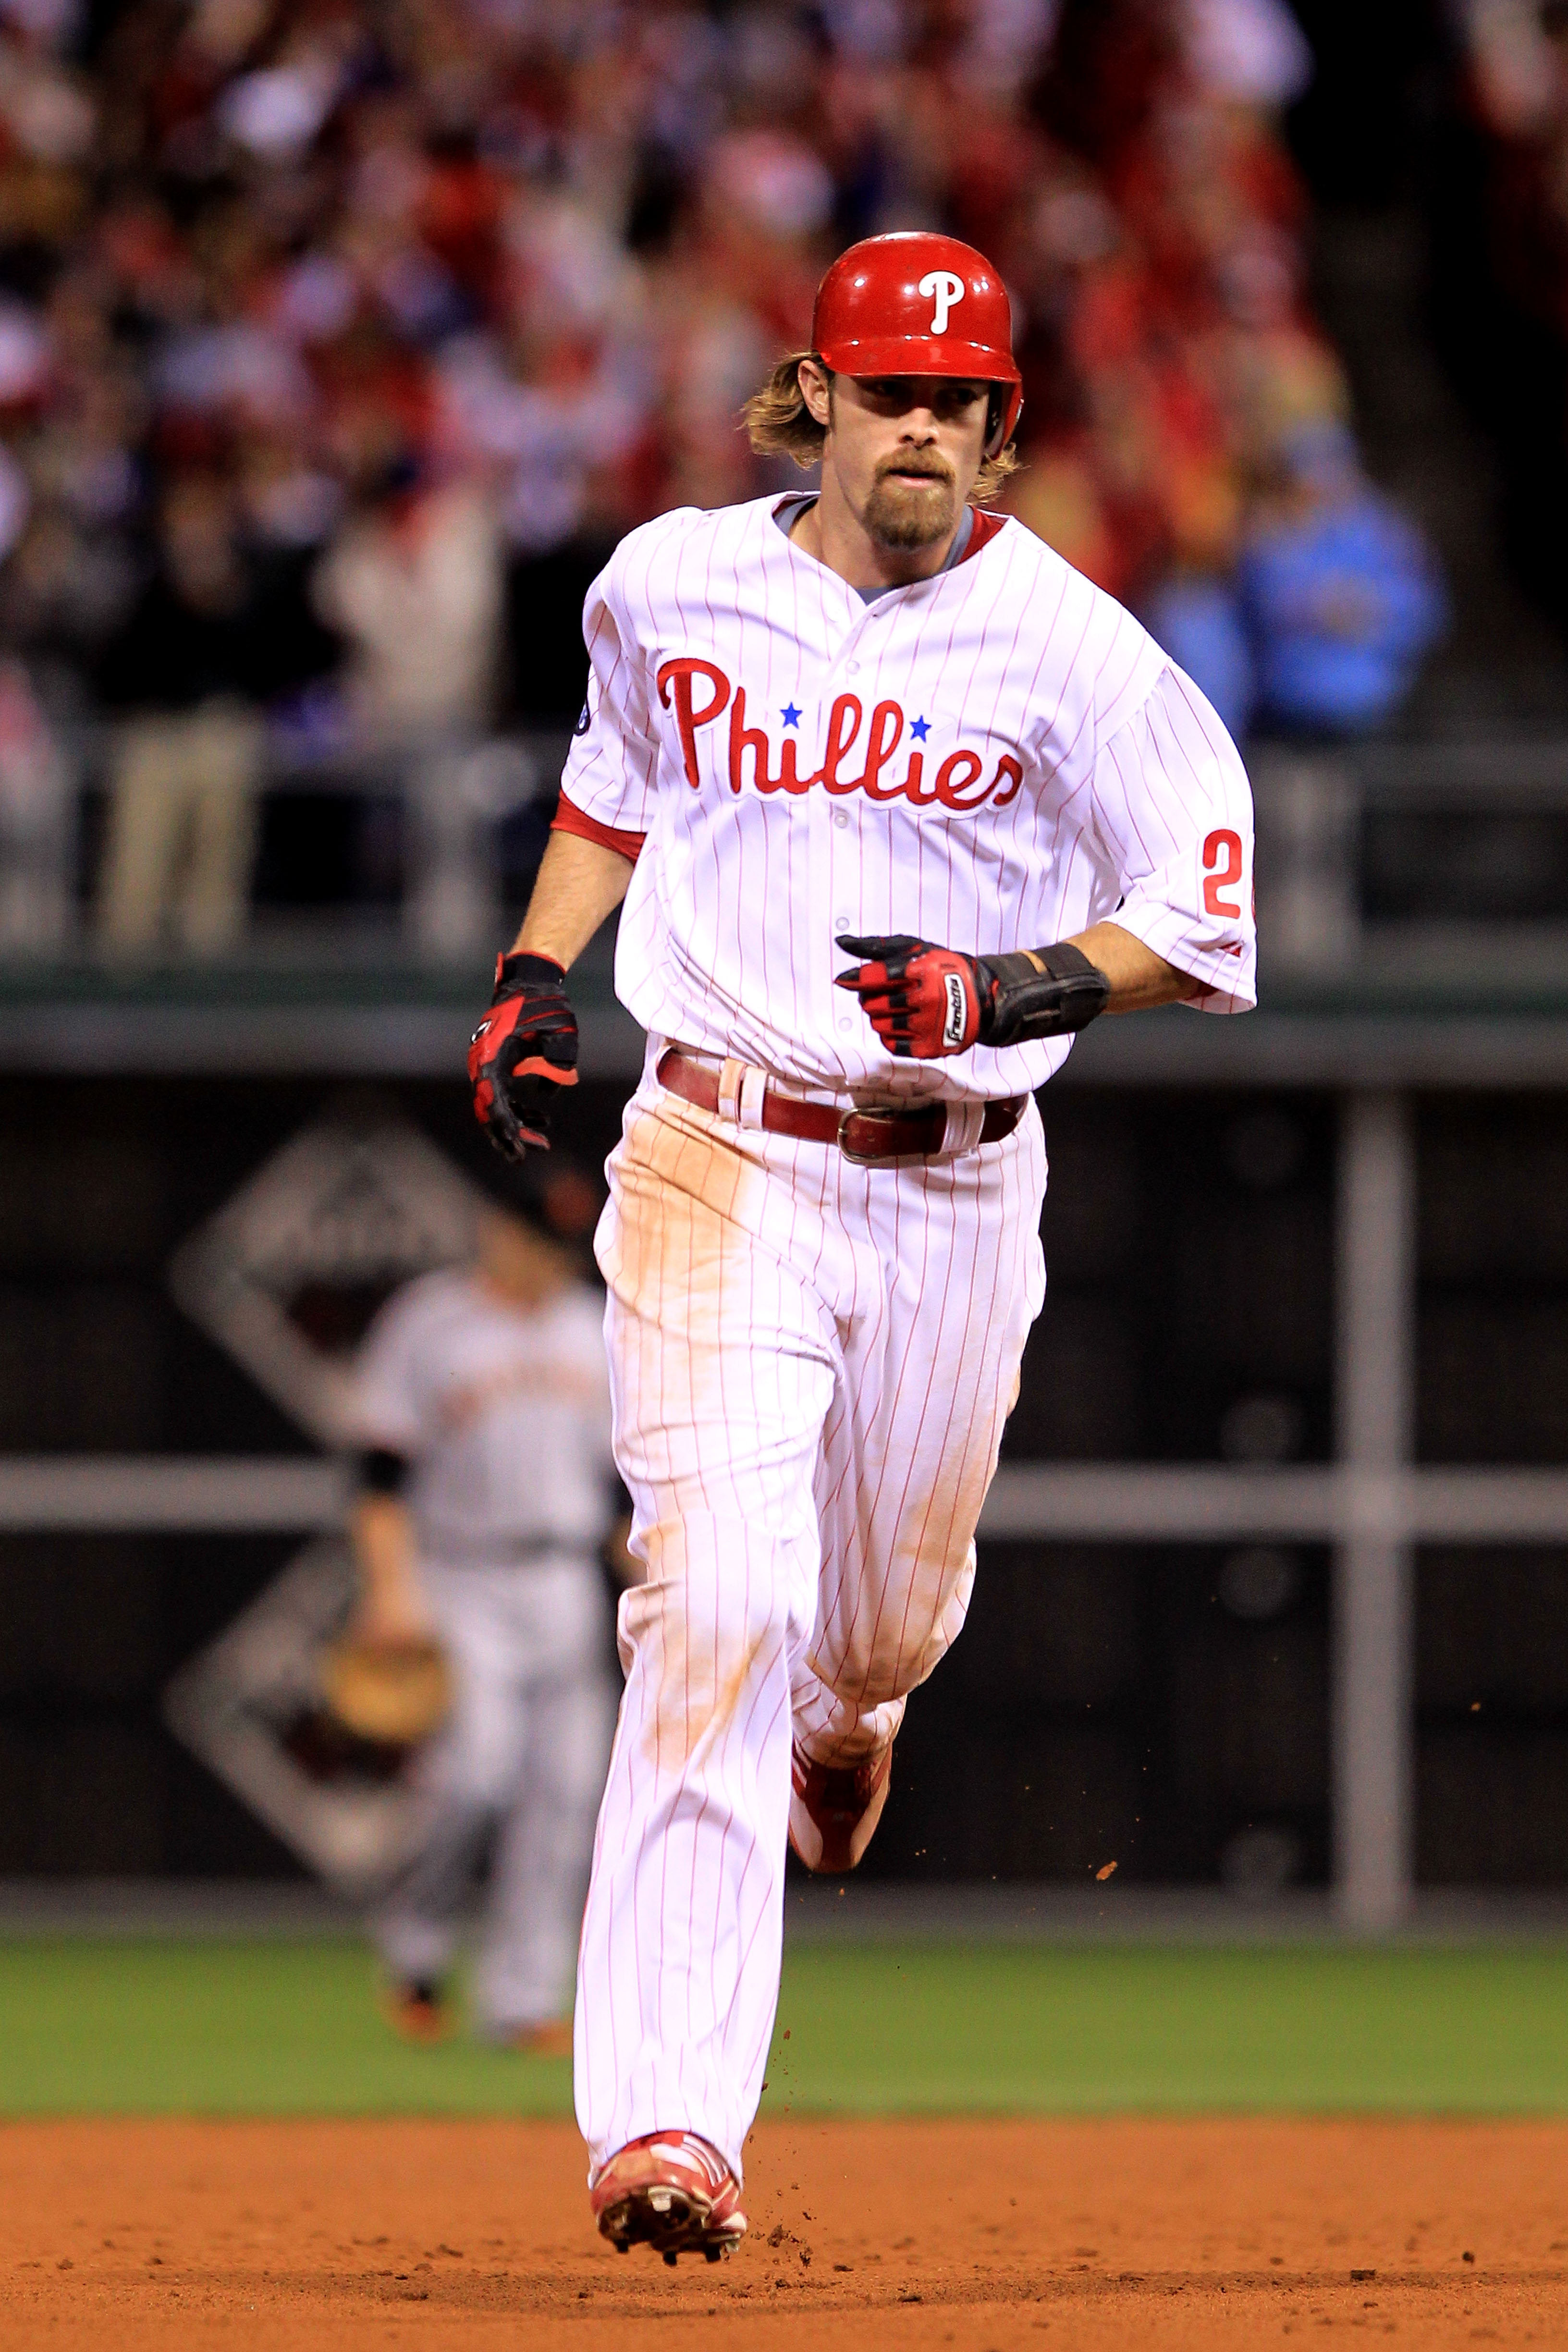 PHILADELPHIA - OCTOBER 16:  Jayson Werth #28 of the Philadelphia Phillies rounds the bases after he hits a two-run home run in the sixth inning against the San Francisco Giants in Game One of the NLCS during the 2010 MLB Playoffs at Citizens Bank Park on